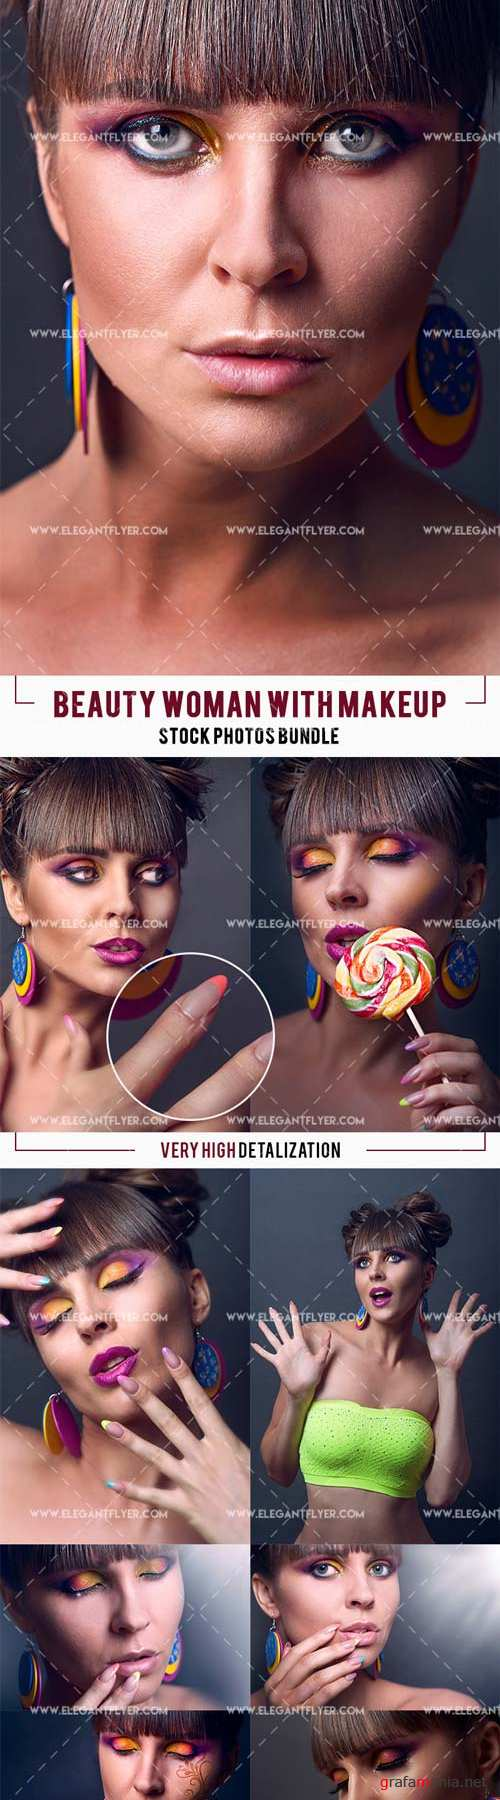 Stock Photos V4 2018 Bundle of Beauty Woman with Makeup – Beauty Girl's Face